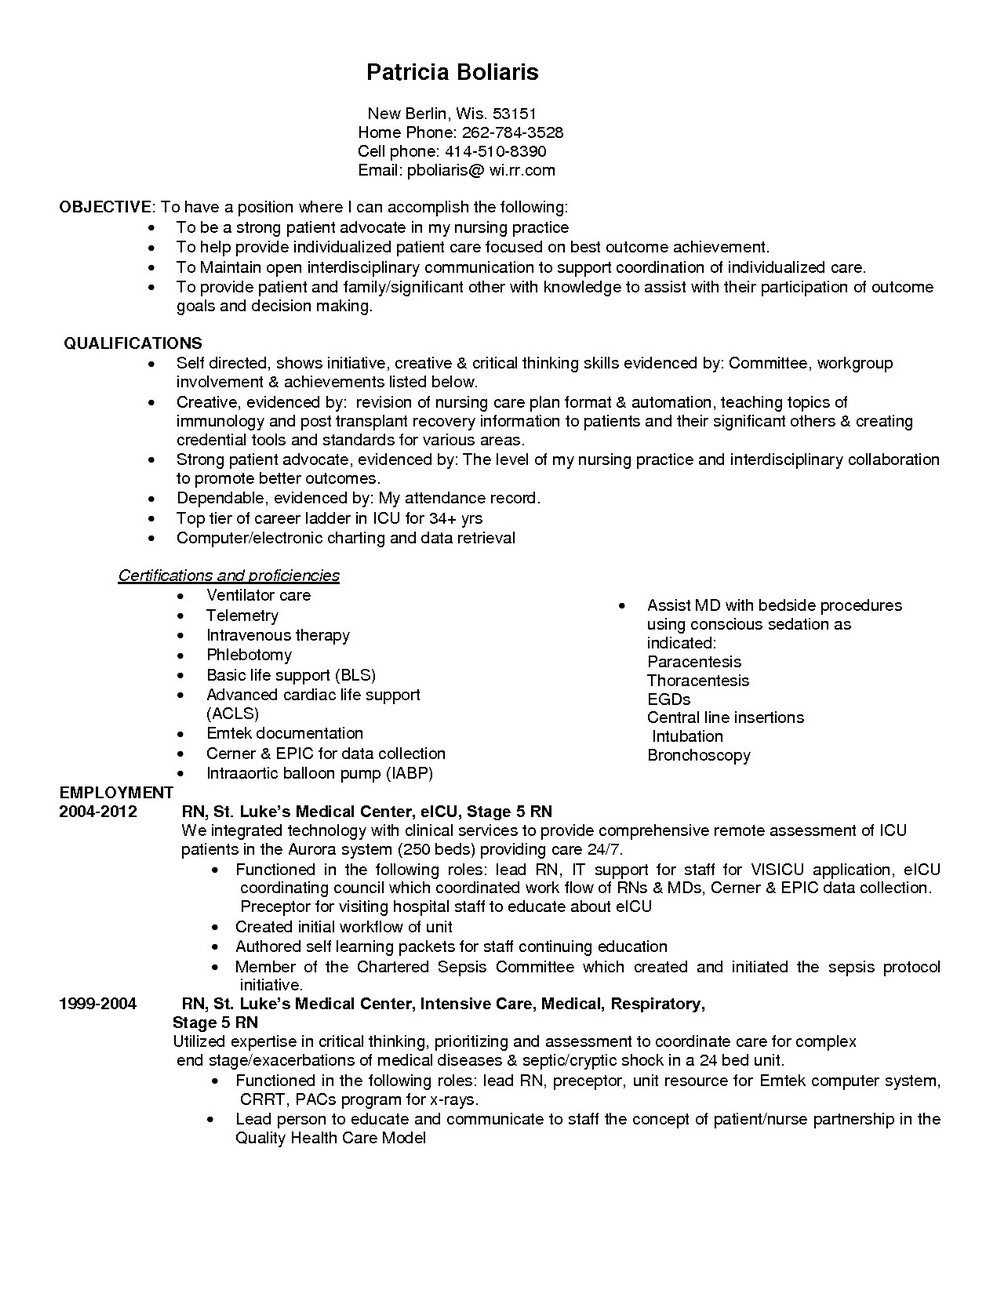 Registered Nurse Resume Sample Format Australia